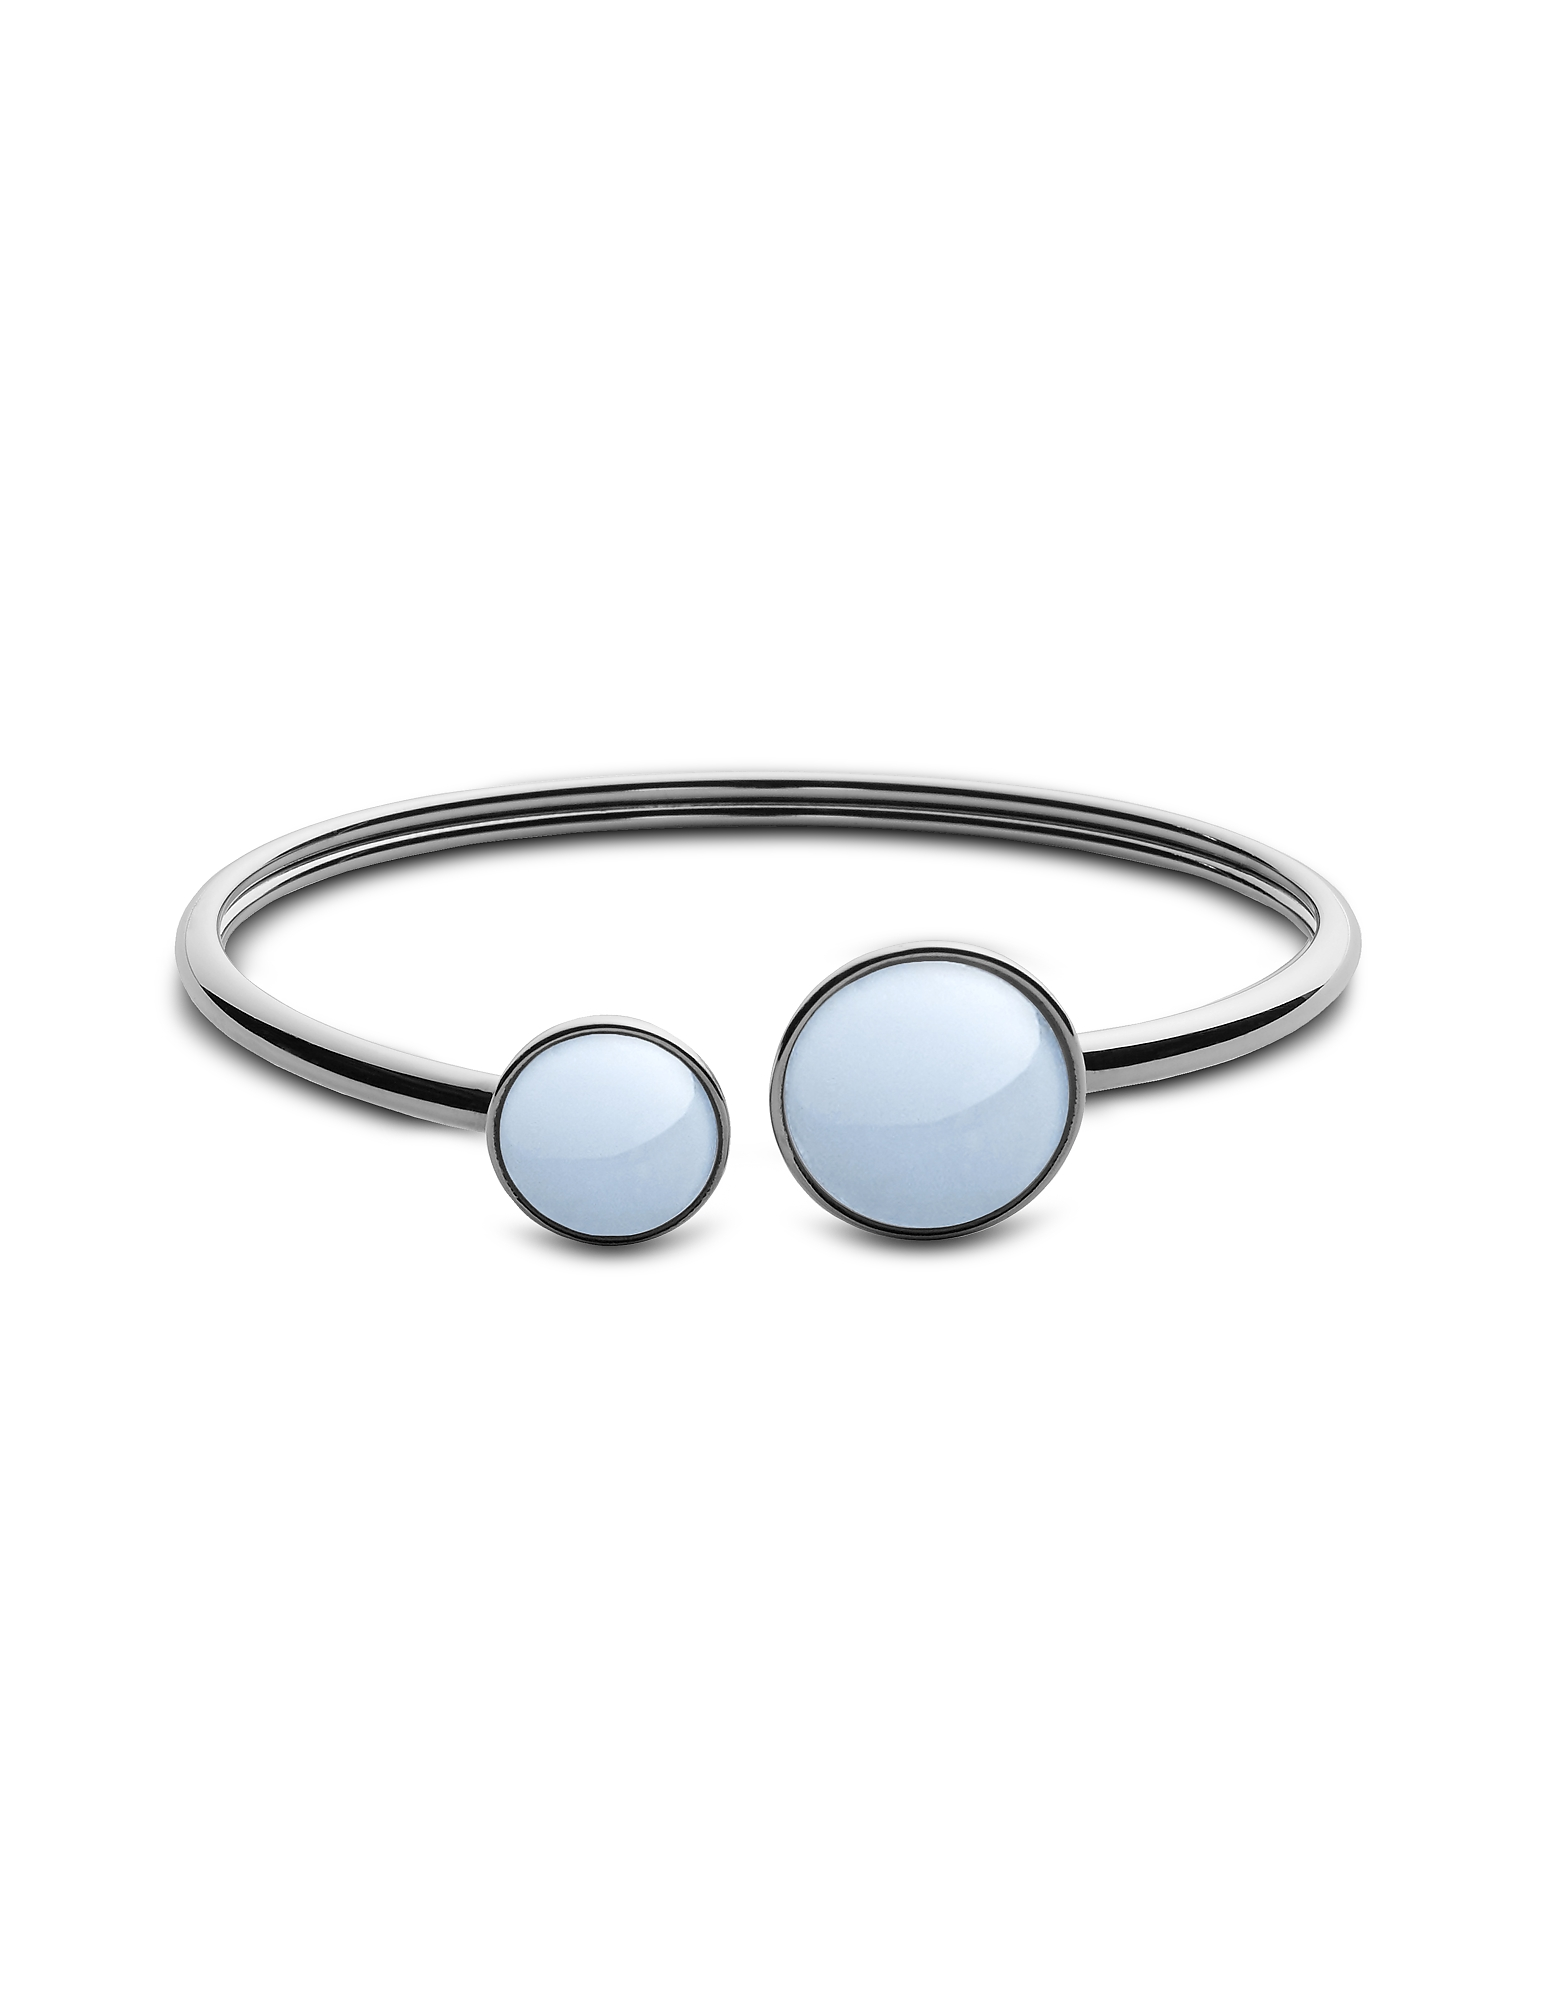 Skagen Bracelets, White Sea Glass Silver Tone Women's Bracelet